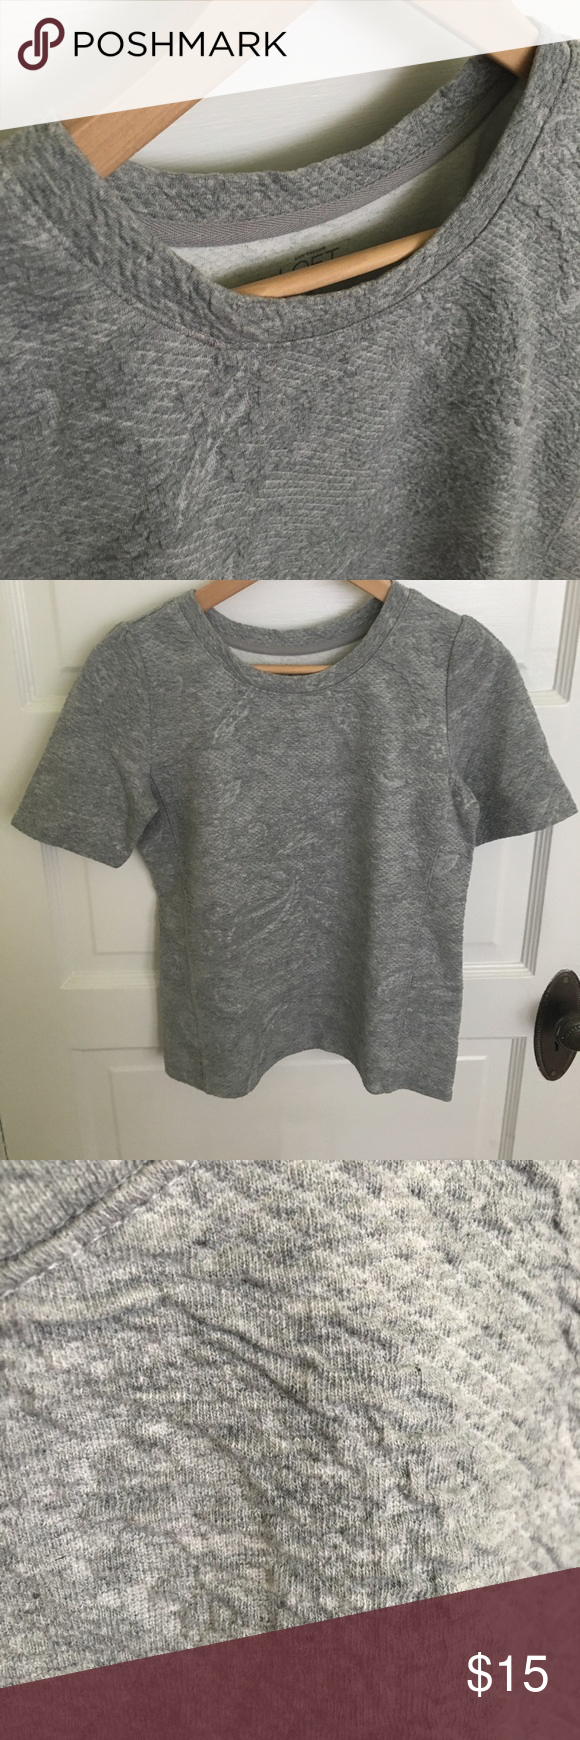 Grey knit top LOFT grey textured knit top. Soft and stretchy. XS. Worn twice. Great for all things casual or making a dressier piece a bit more relaxed. LOFT Tops